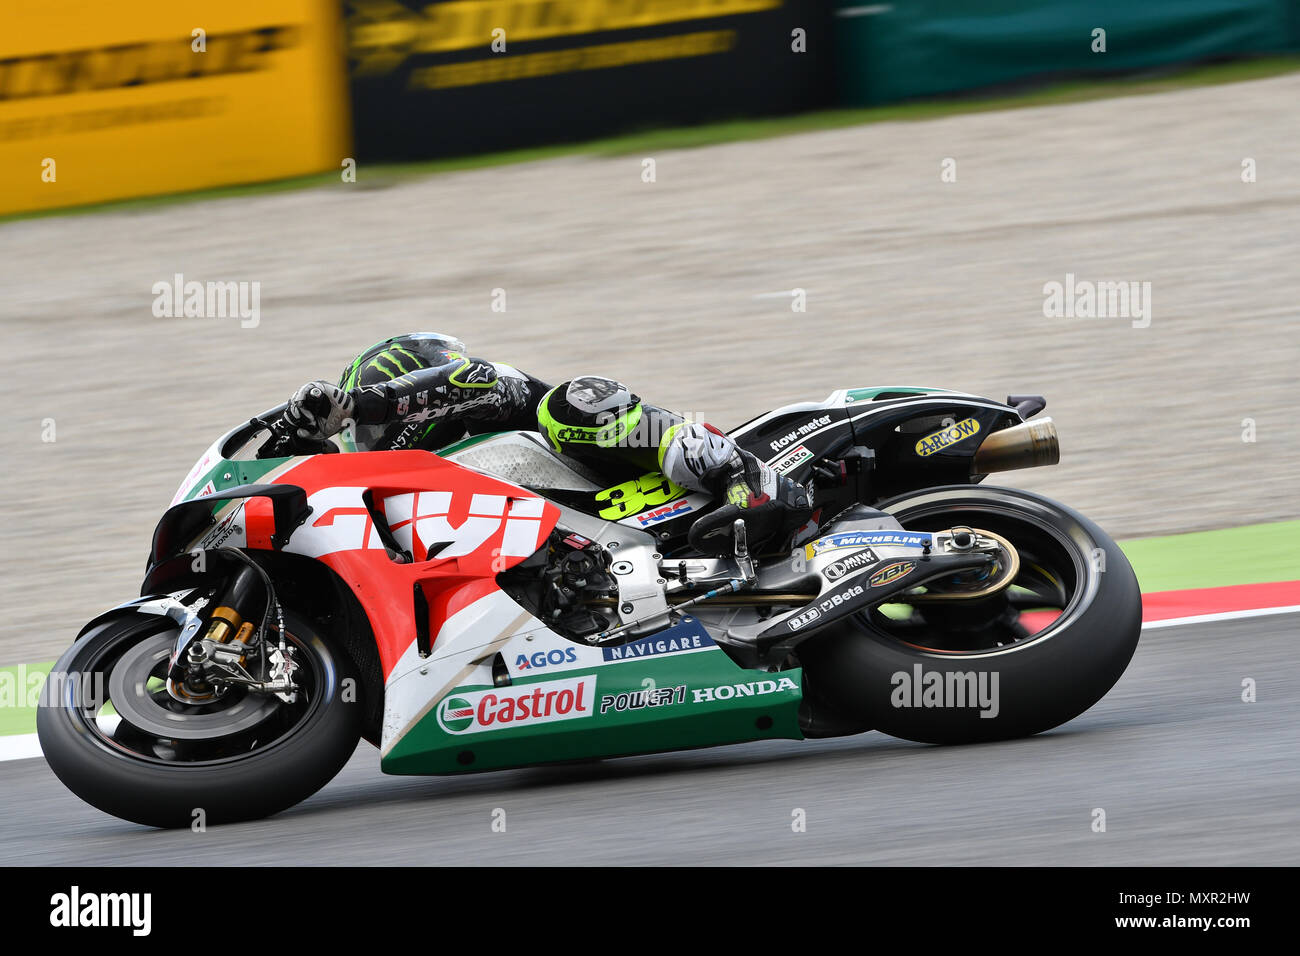 Mugello - ITALY, 2 JUNE: British LCR Honda Castrol Team Rider Cal Crutchlow during Qualifying session at 2018 GP of Italy of MotoGP on June, 2018. - Stock Image